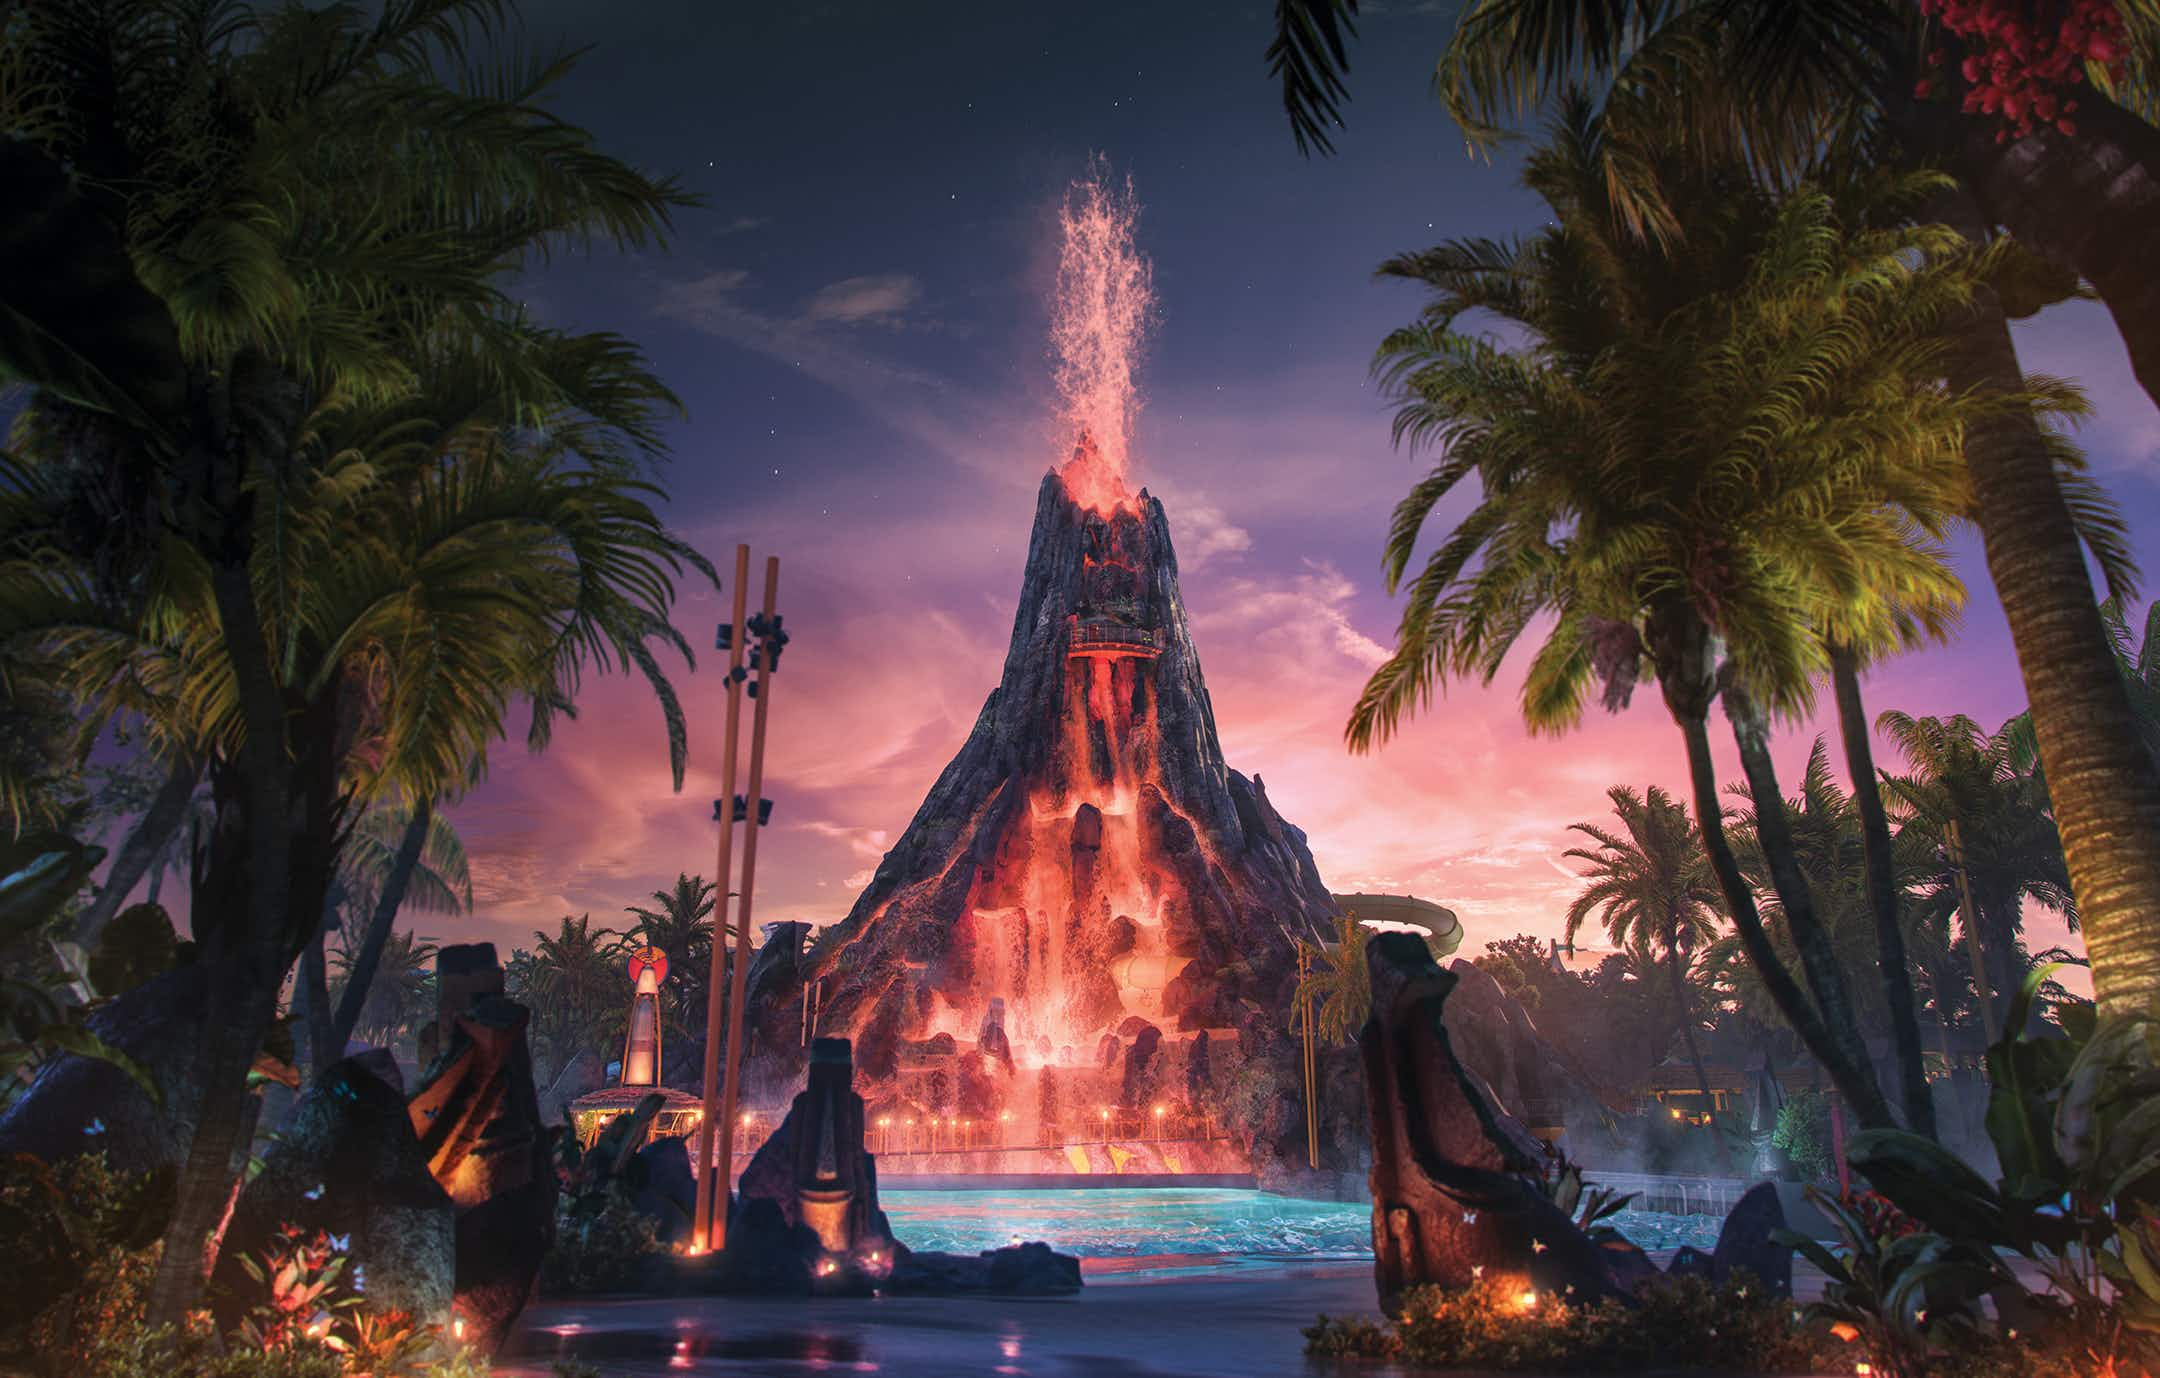 Universal Orlando's newly opened Volcano Bay allows guests to wait in line virtually